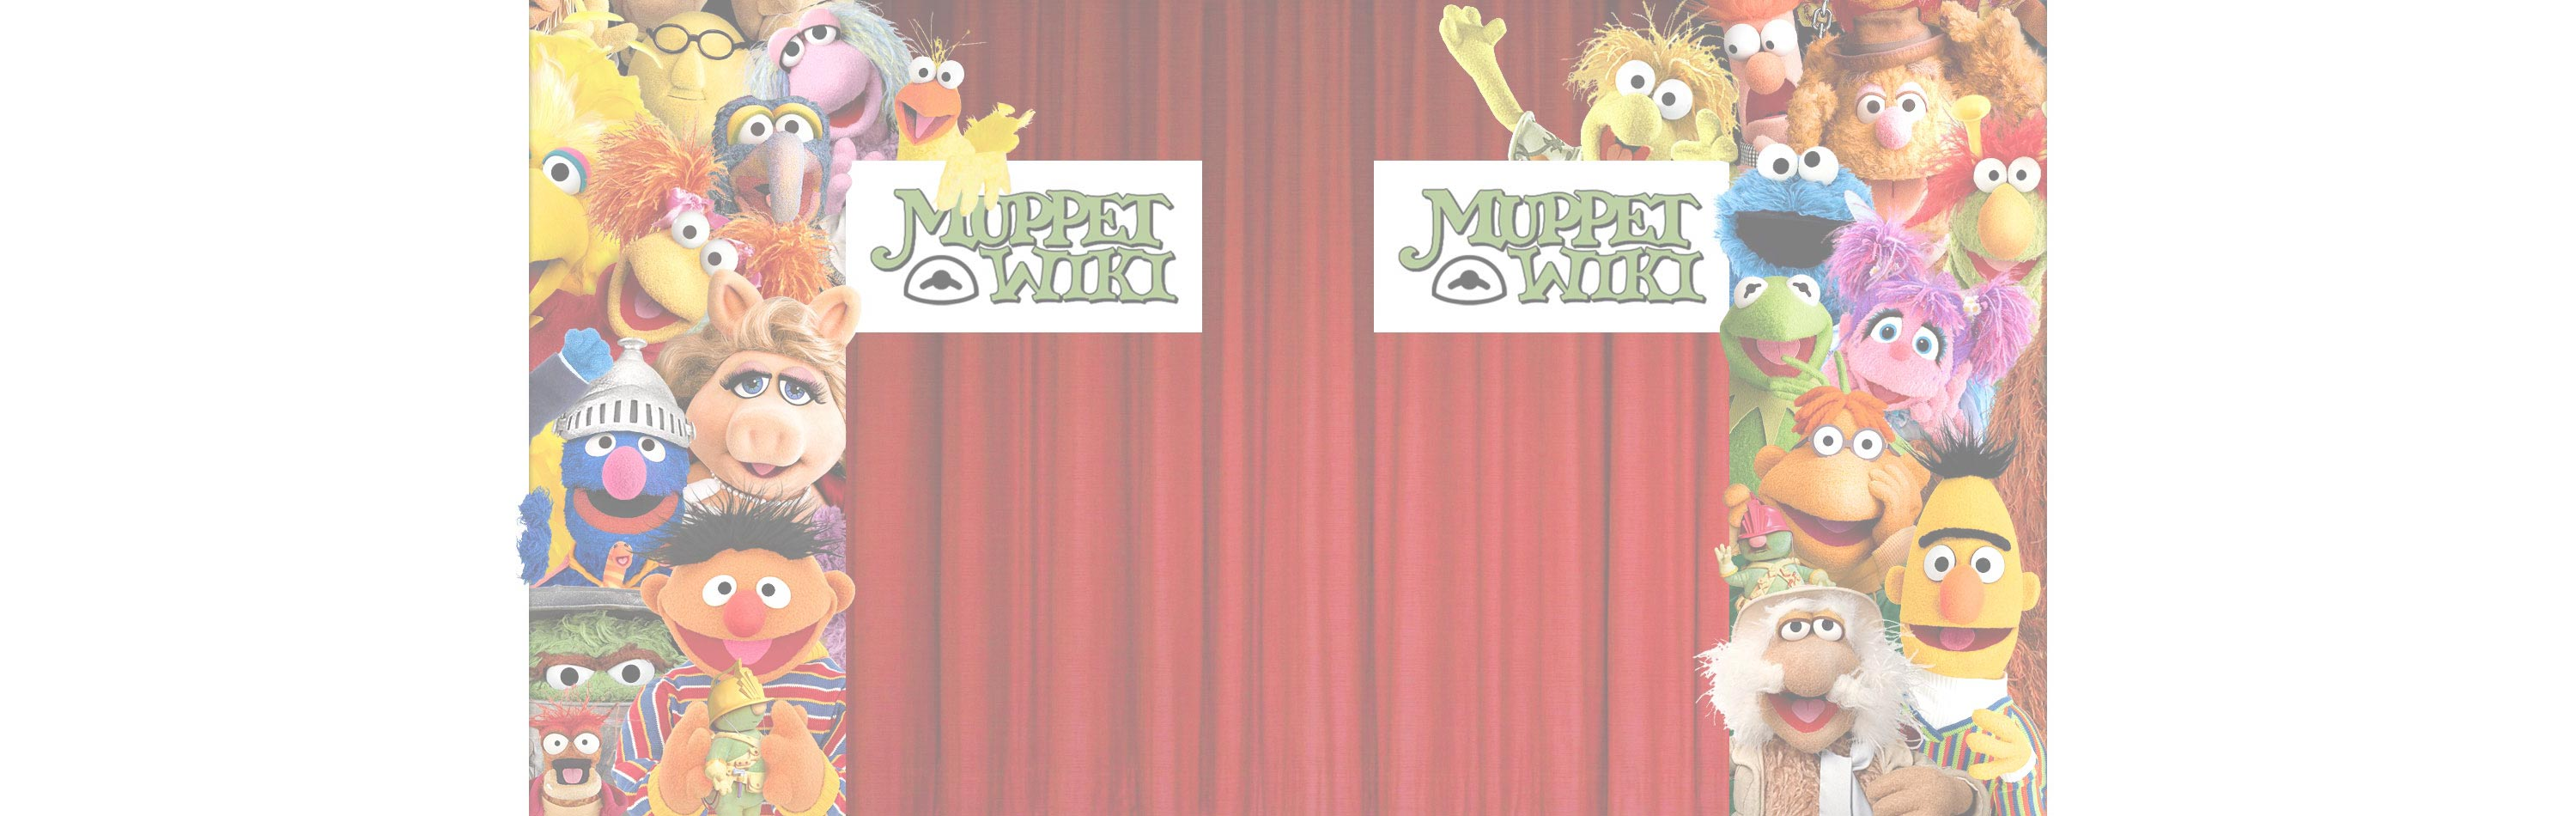 The Muppets productions | Muppet Wiki | Fandom powered by Wikia